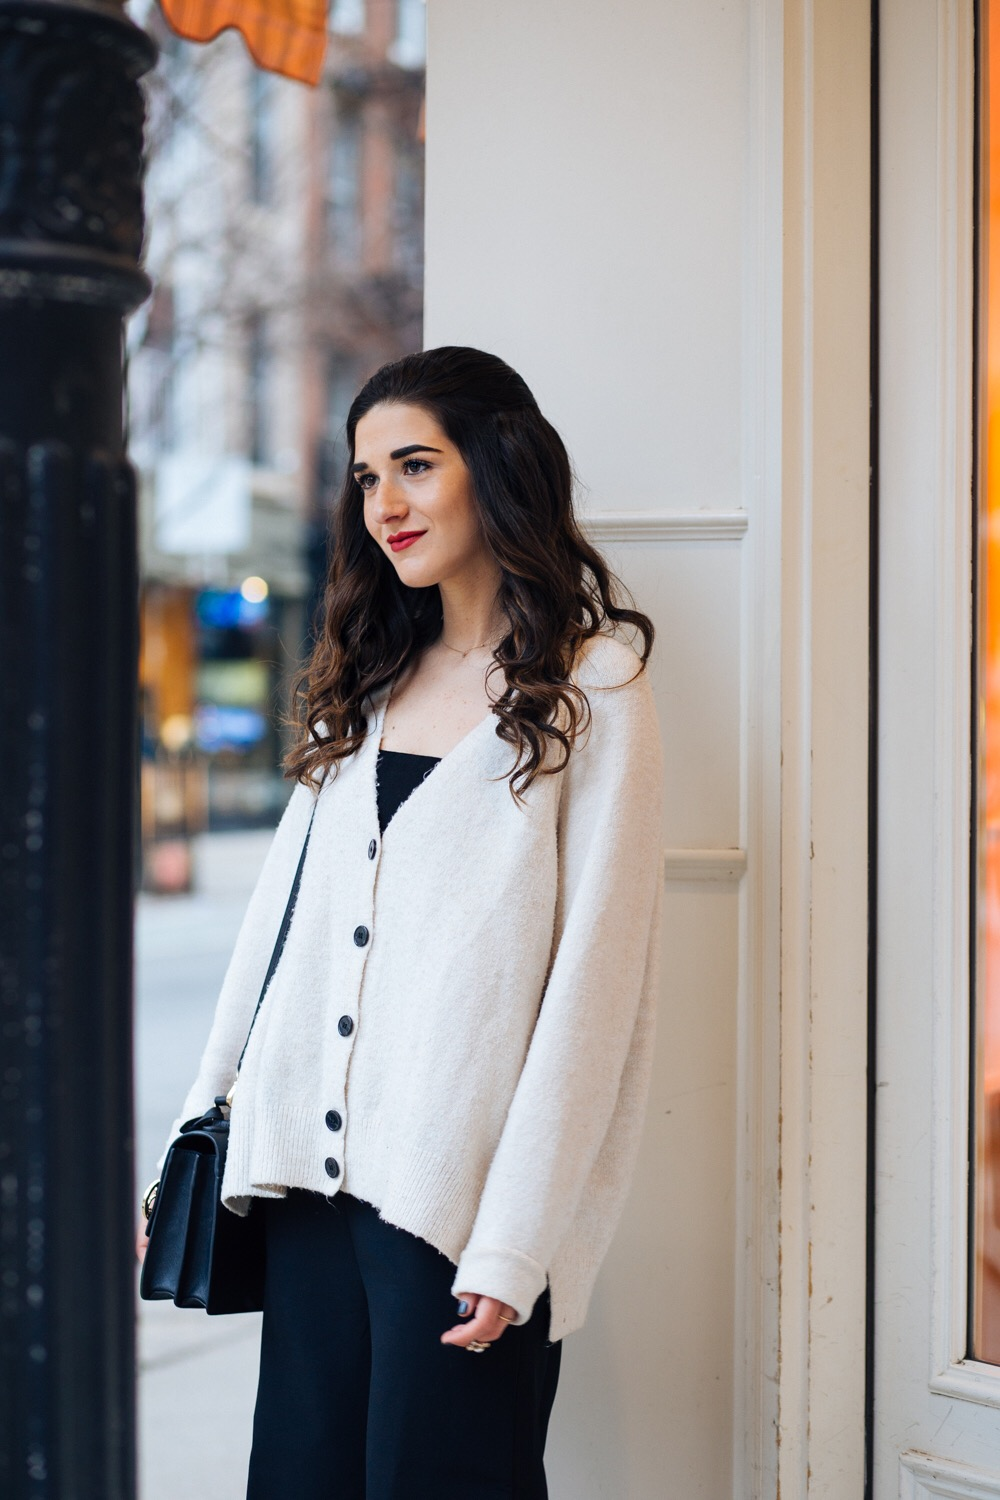 Black Jumpsuit Cream Cardigan All About The Blogger Hierarchy Esther Santer Fashion Blog NYC Street Style Blogger Outfit OOTD Trendy Shoes Booties Ivanka Trump Henri Bendel Bag Sweater Cozy Culottes Hair Model Girls Shopping Wear Winter  Minimal Inspo.jpg